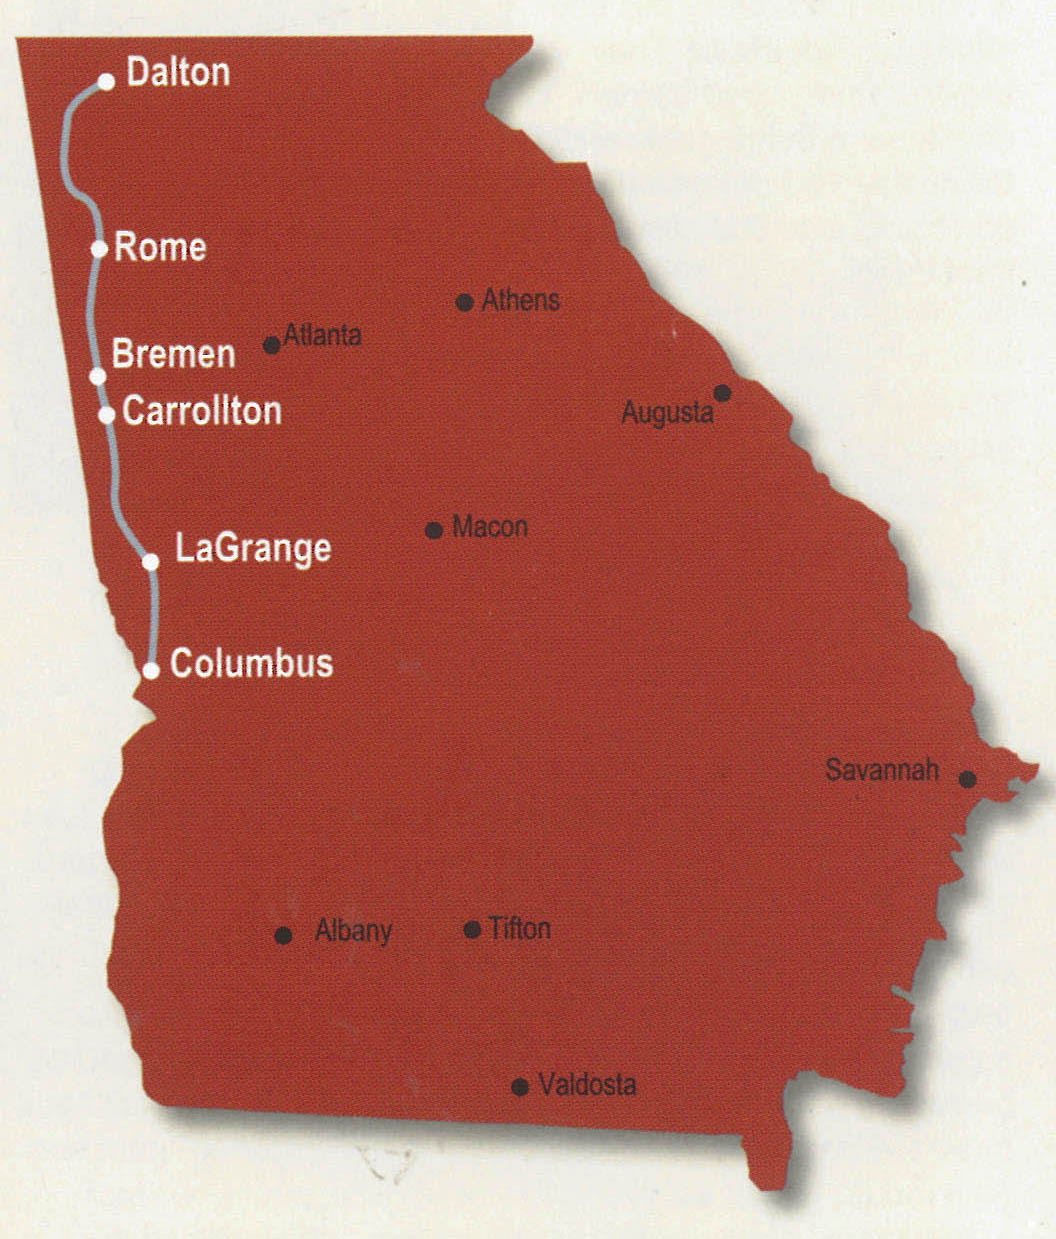 Georgia map showing Trail